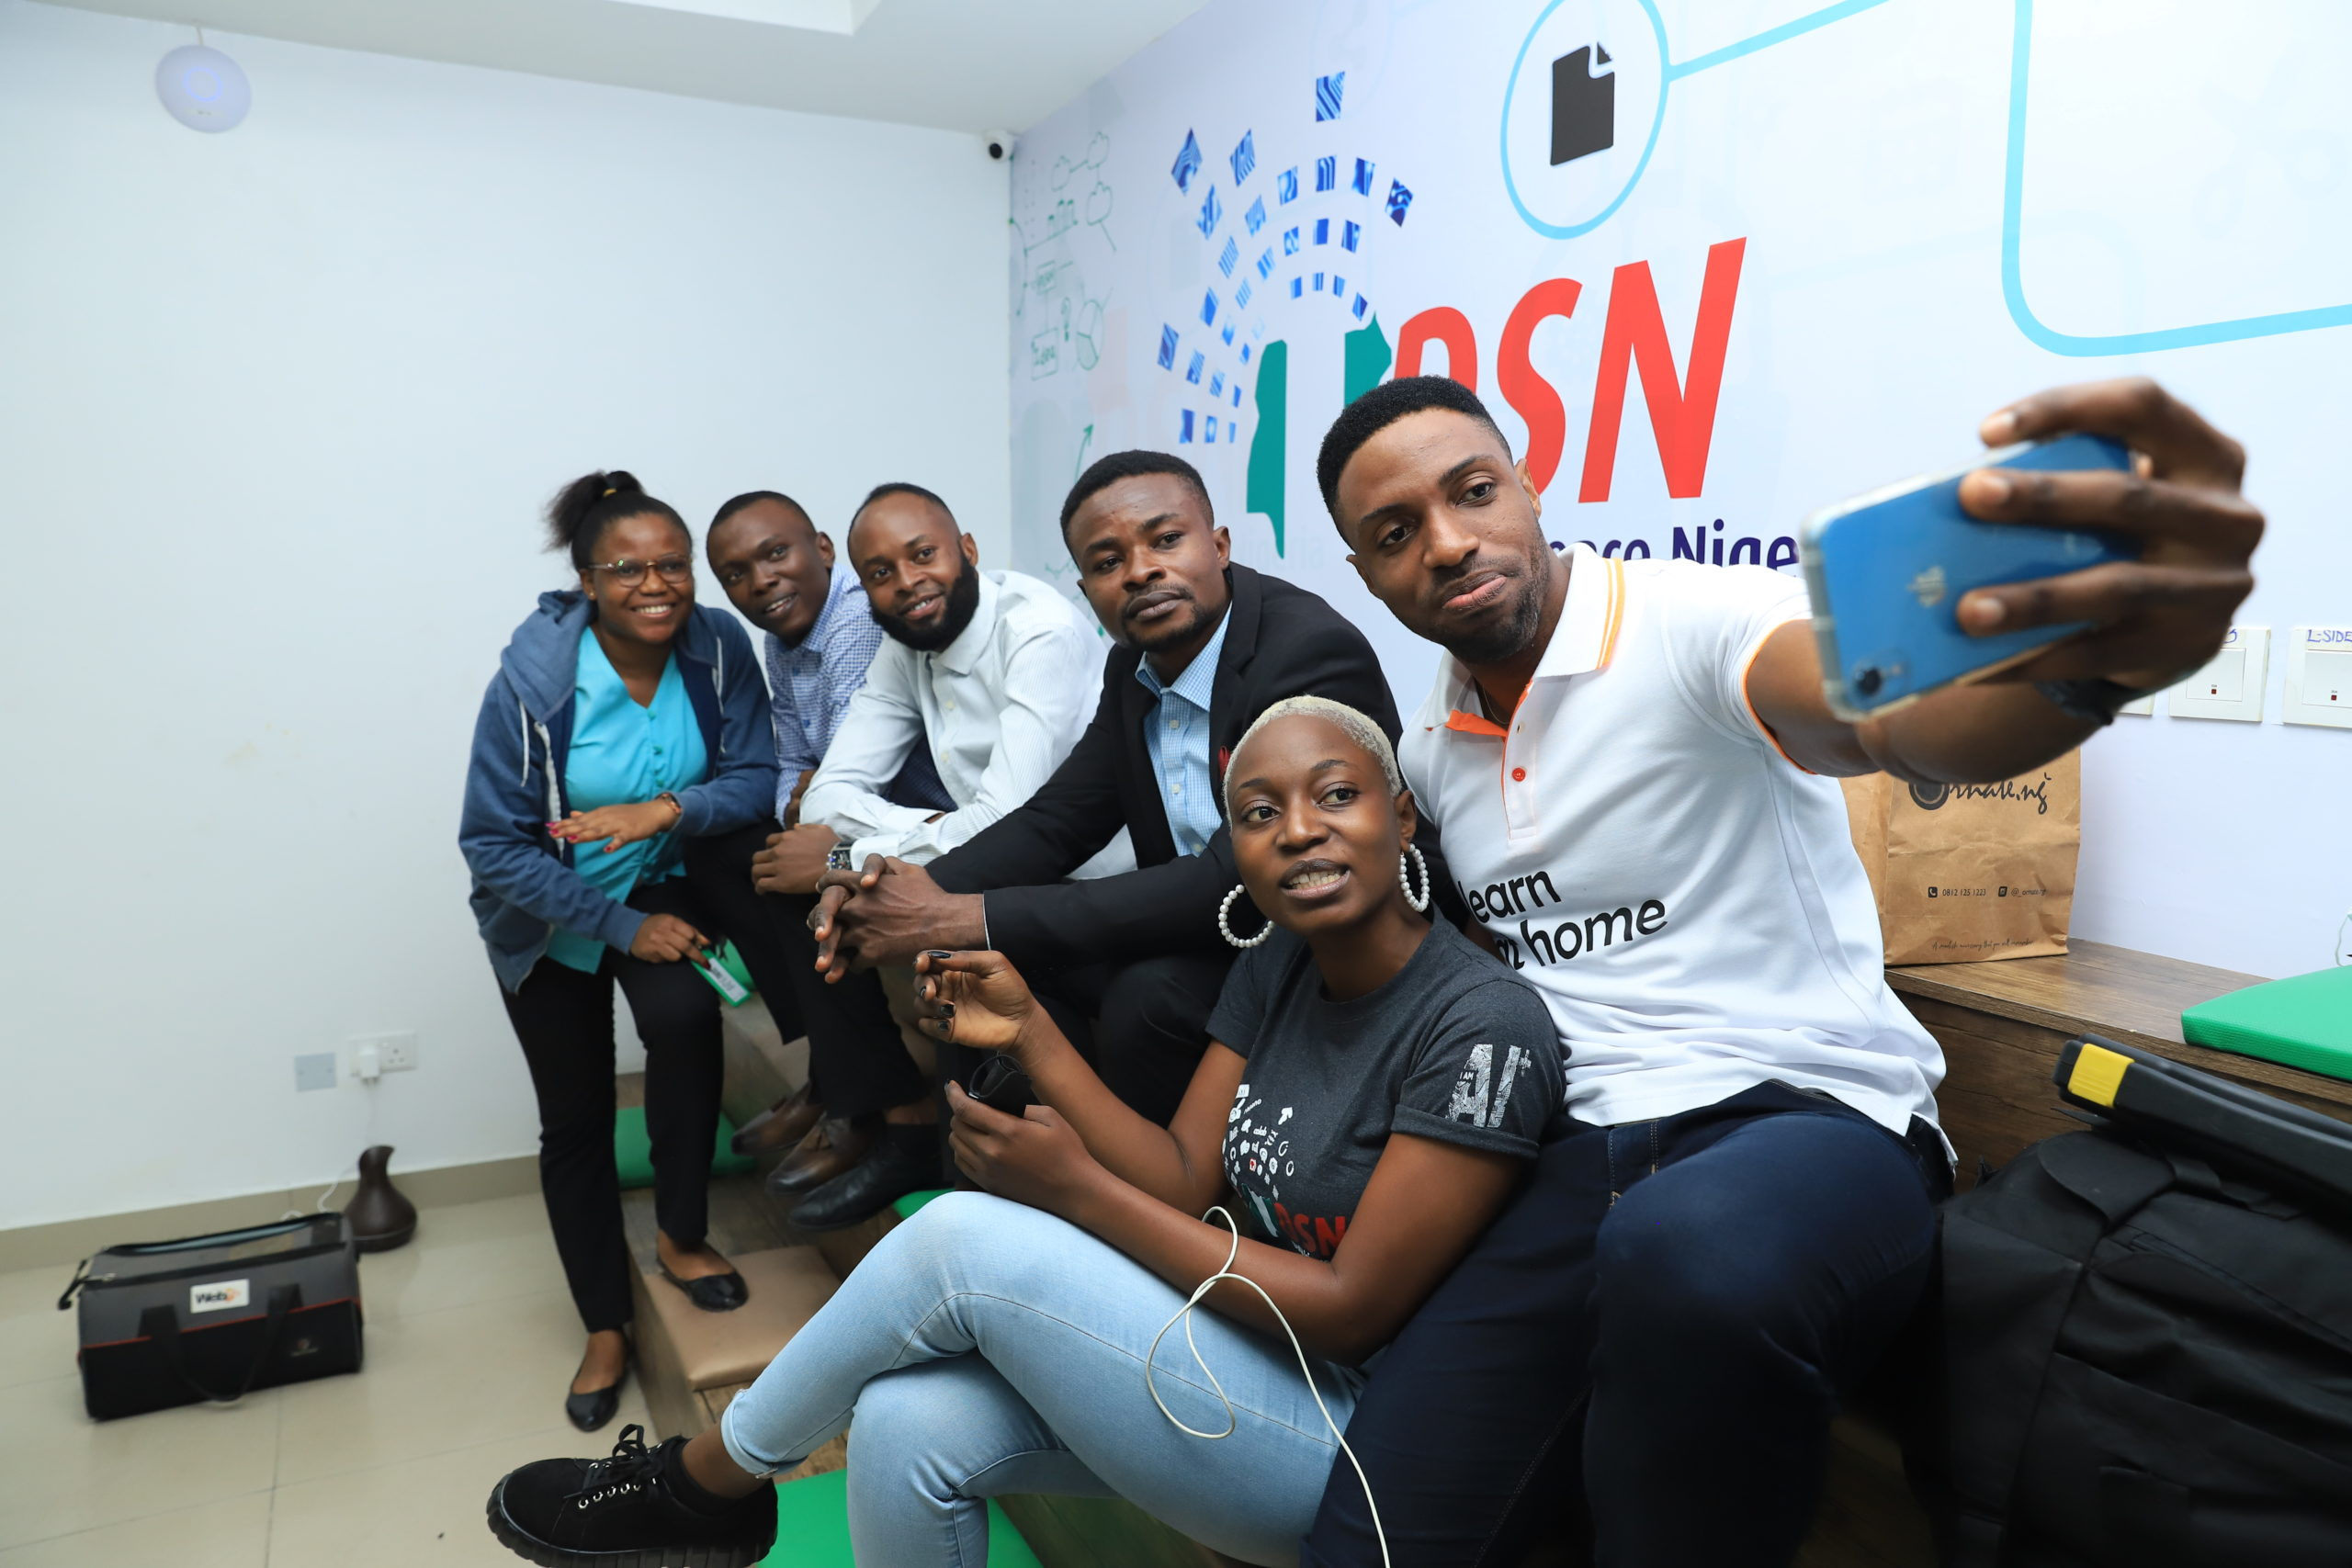 Data Science Nigeria is using AI to build wealth for the underserved